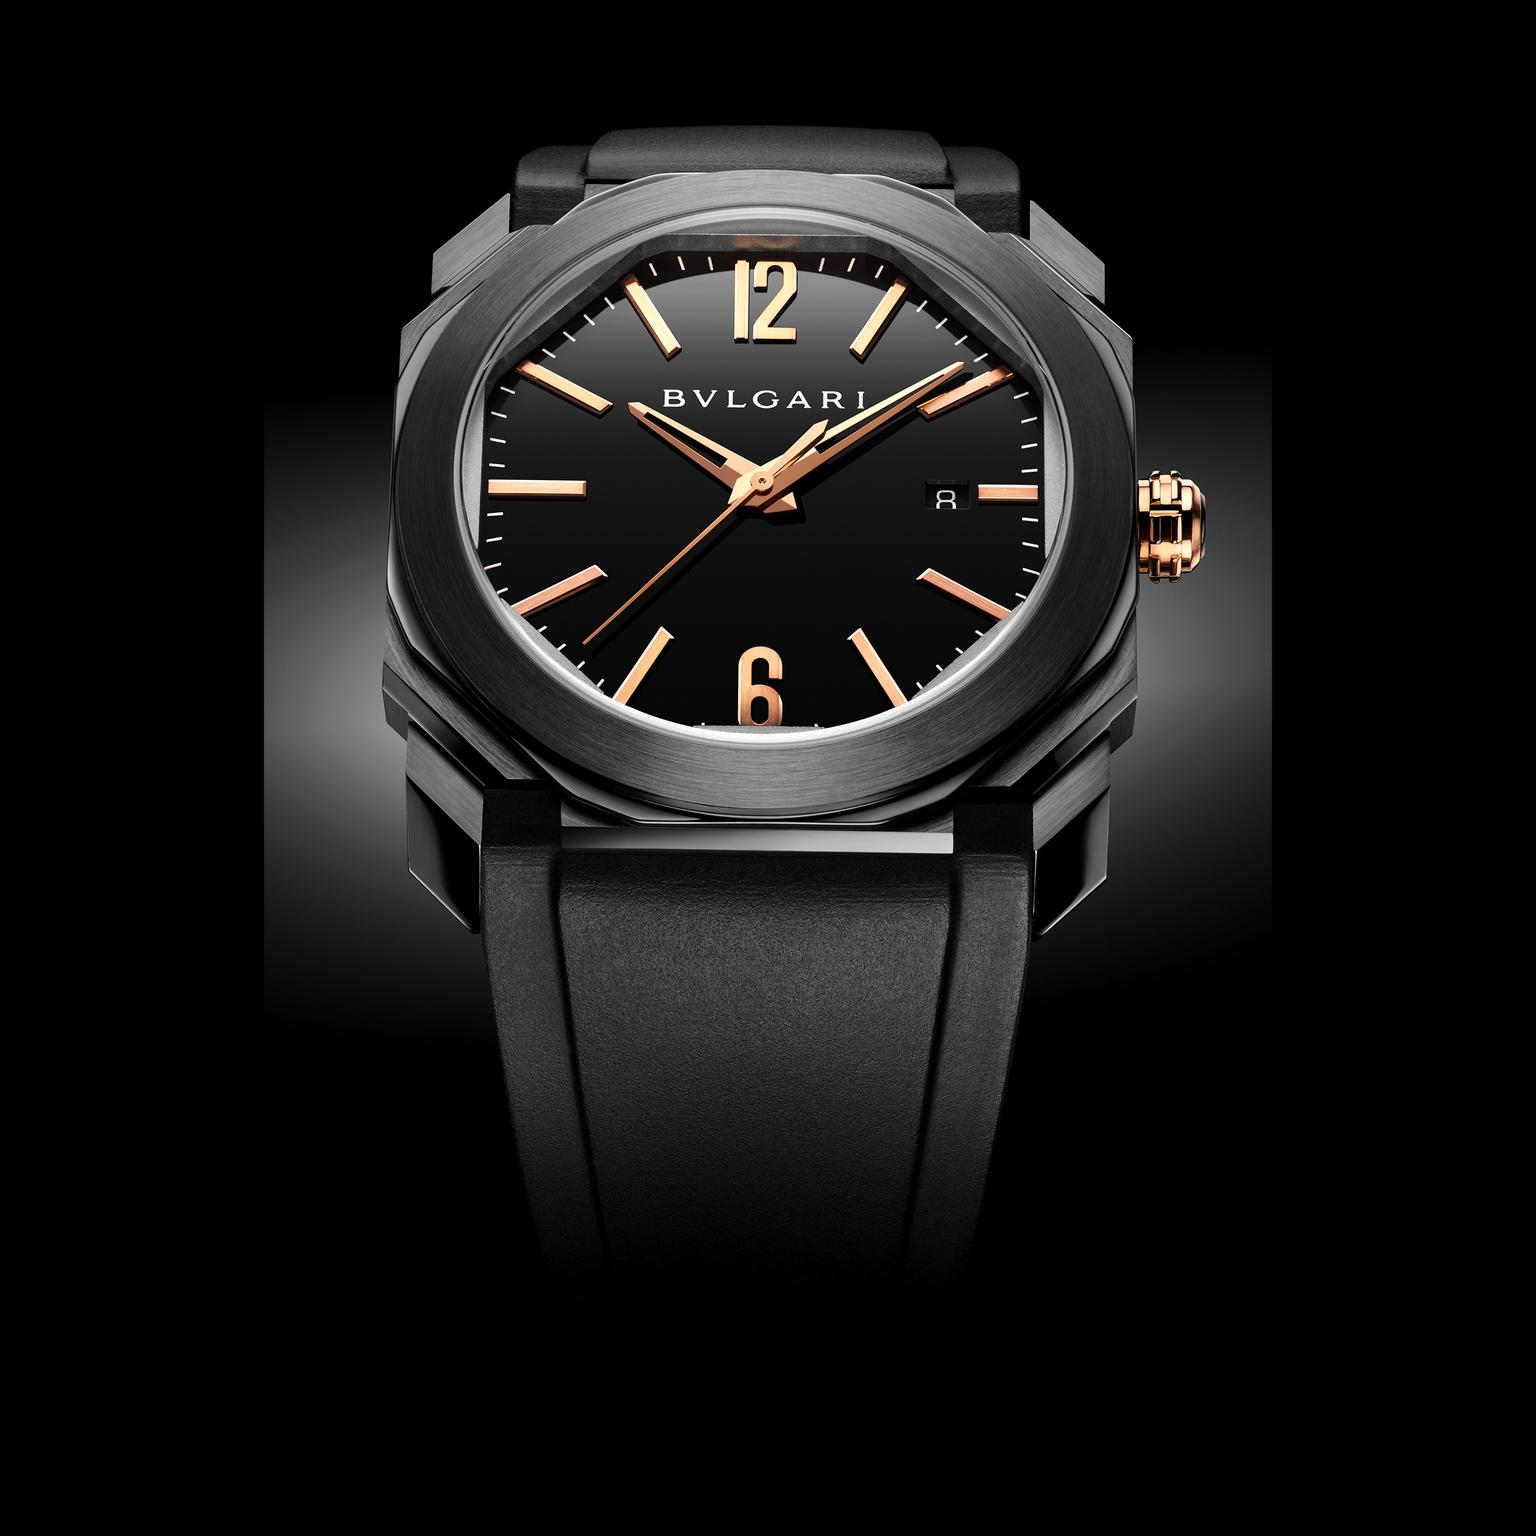 Bulgari Octo Tuttonero watch